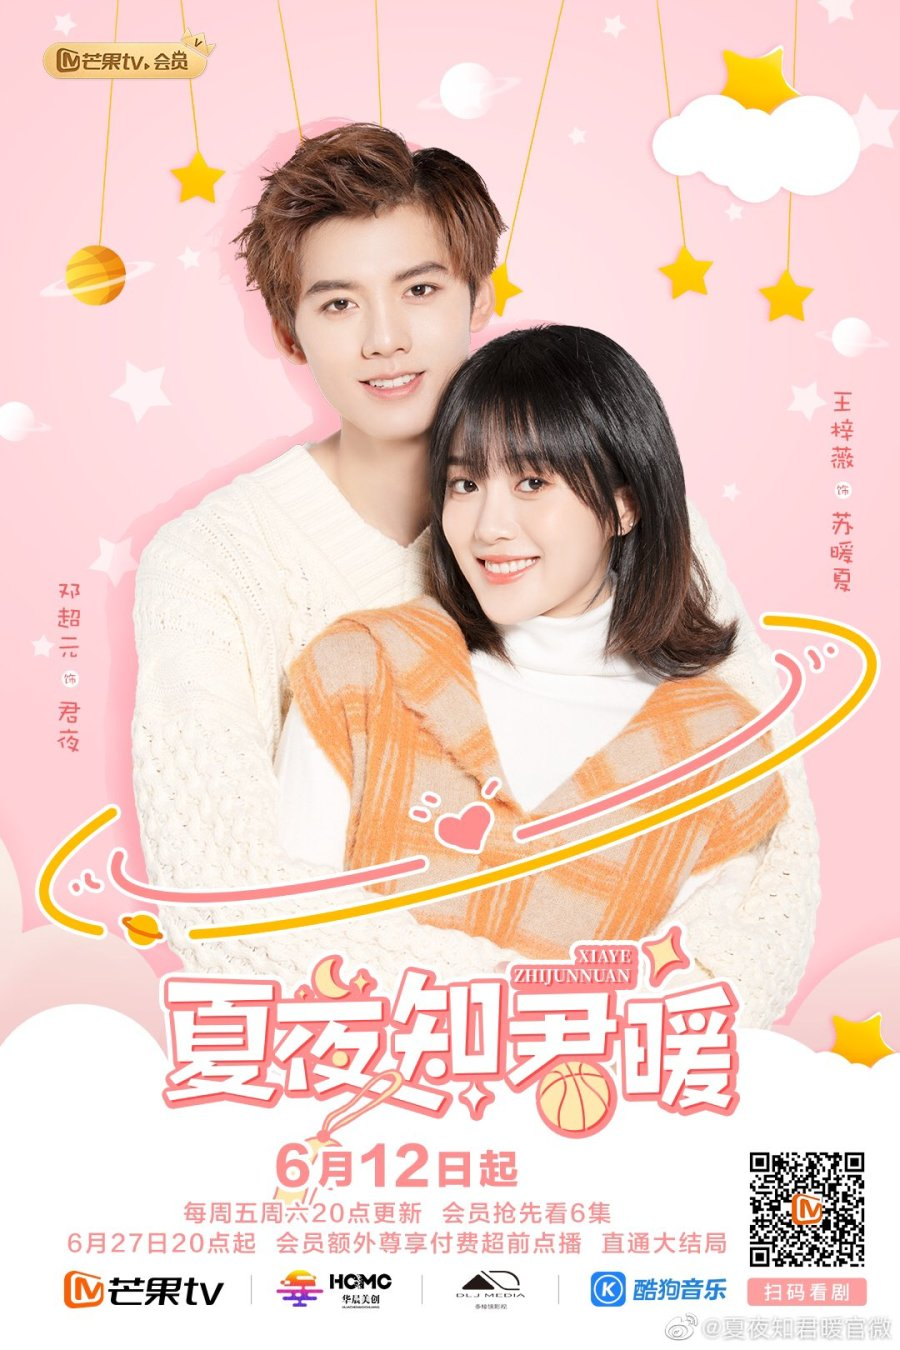 Ver Dorama Love Of Summer Night Sub Español Descargar Love Of Summer Night Online Gratis In 2021 With You Chinese Drama Drama Chines Drama